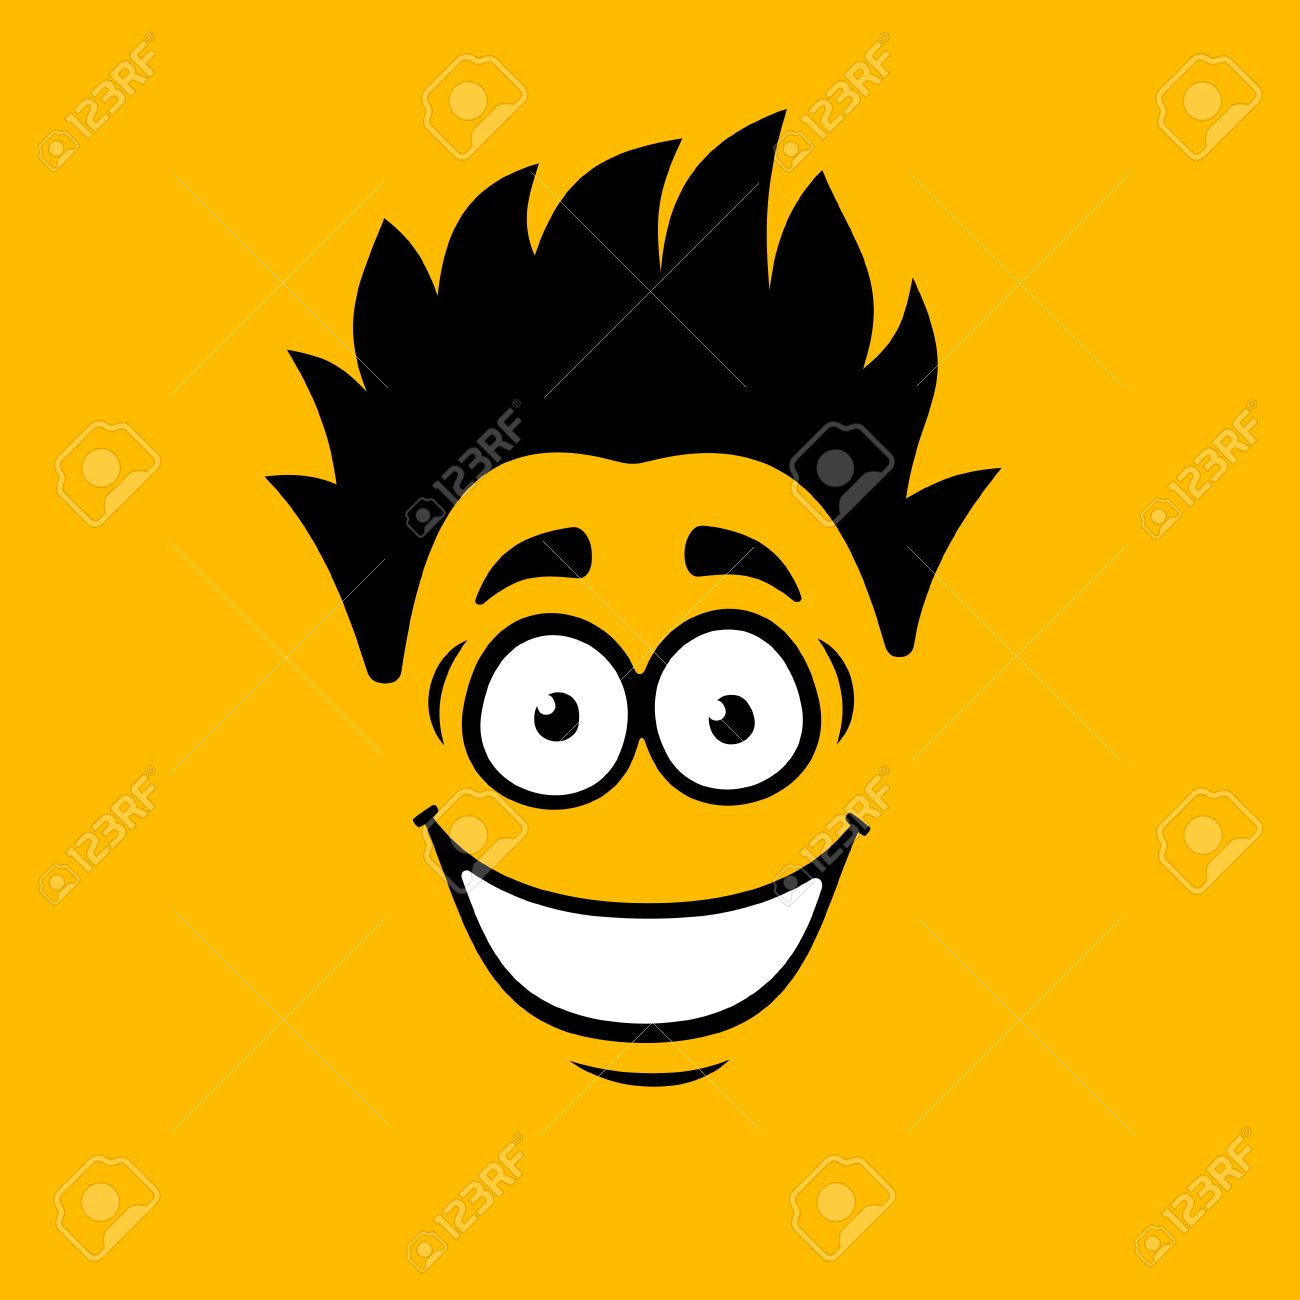 smiling cartoon face on